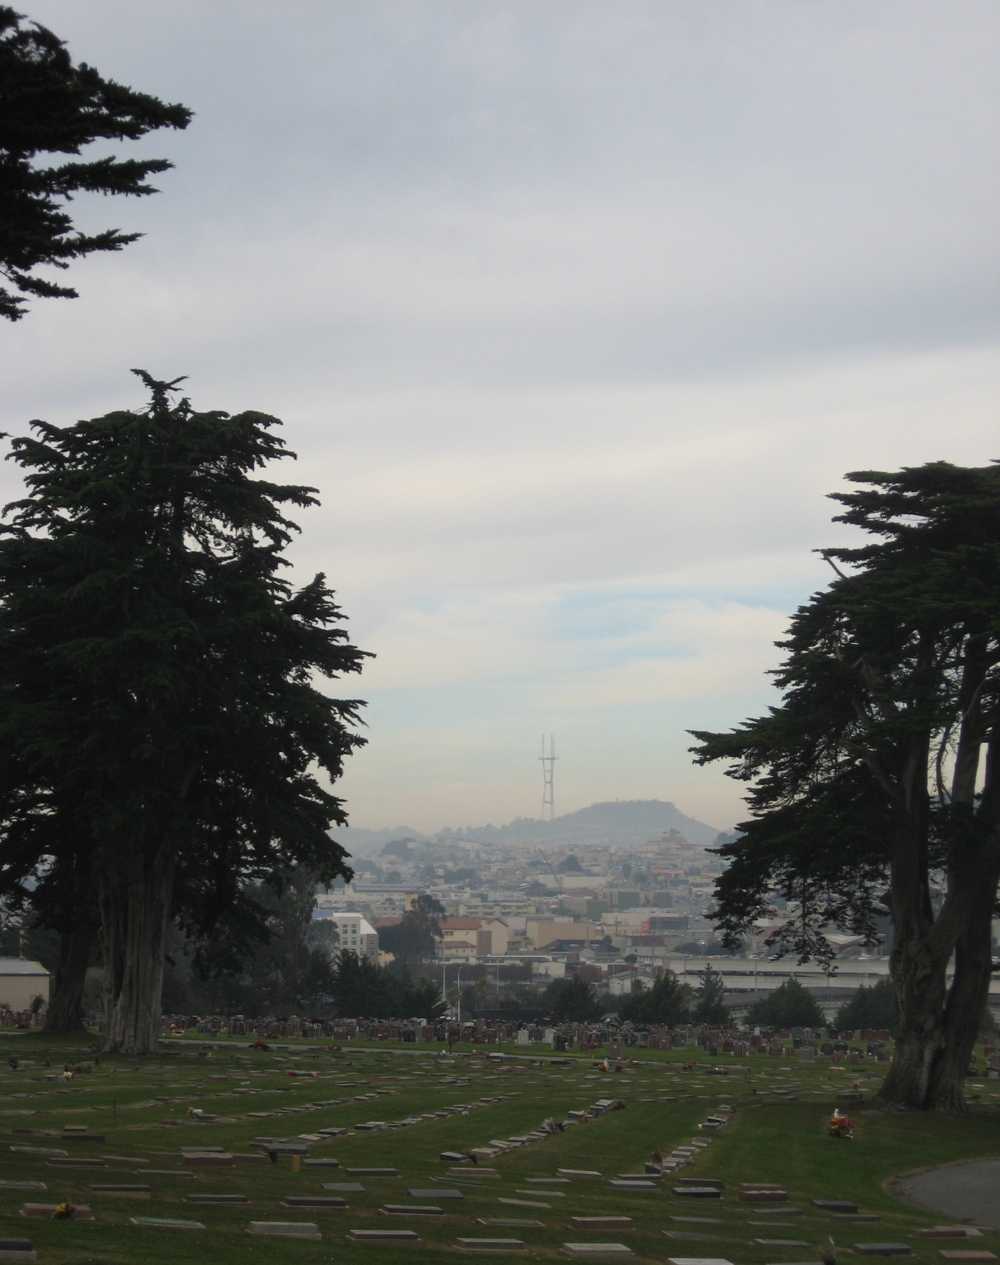 From Emperor Norton's grave, there is a view of Sutro Tower perfectly framed between two beautiful trees.